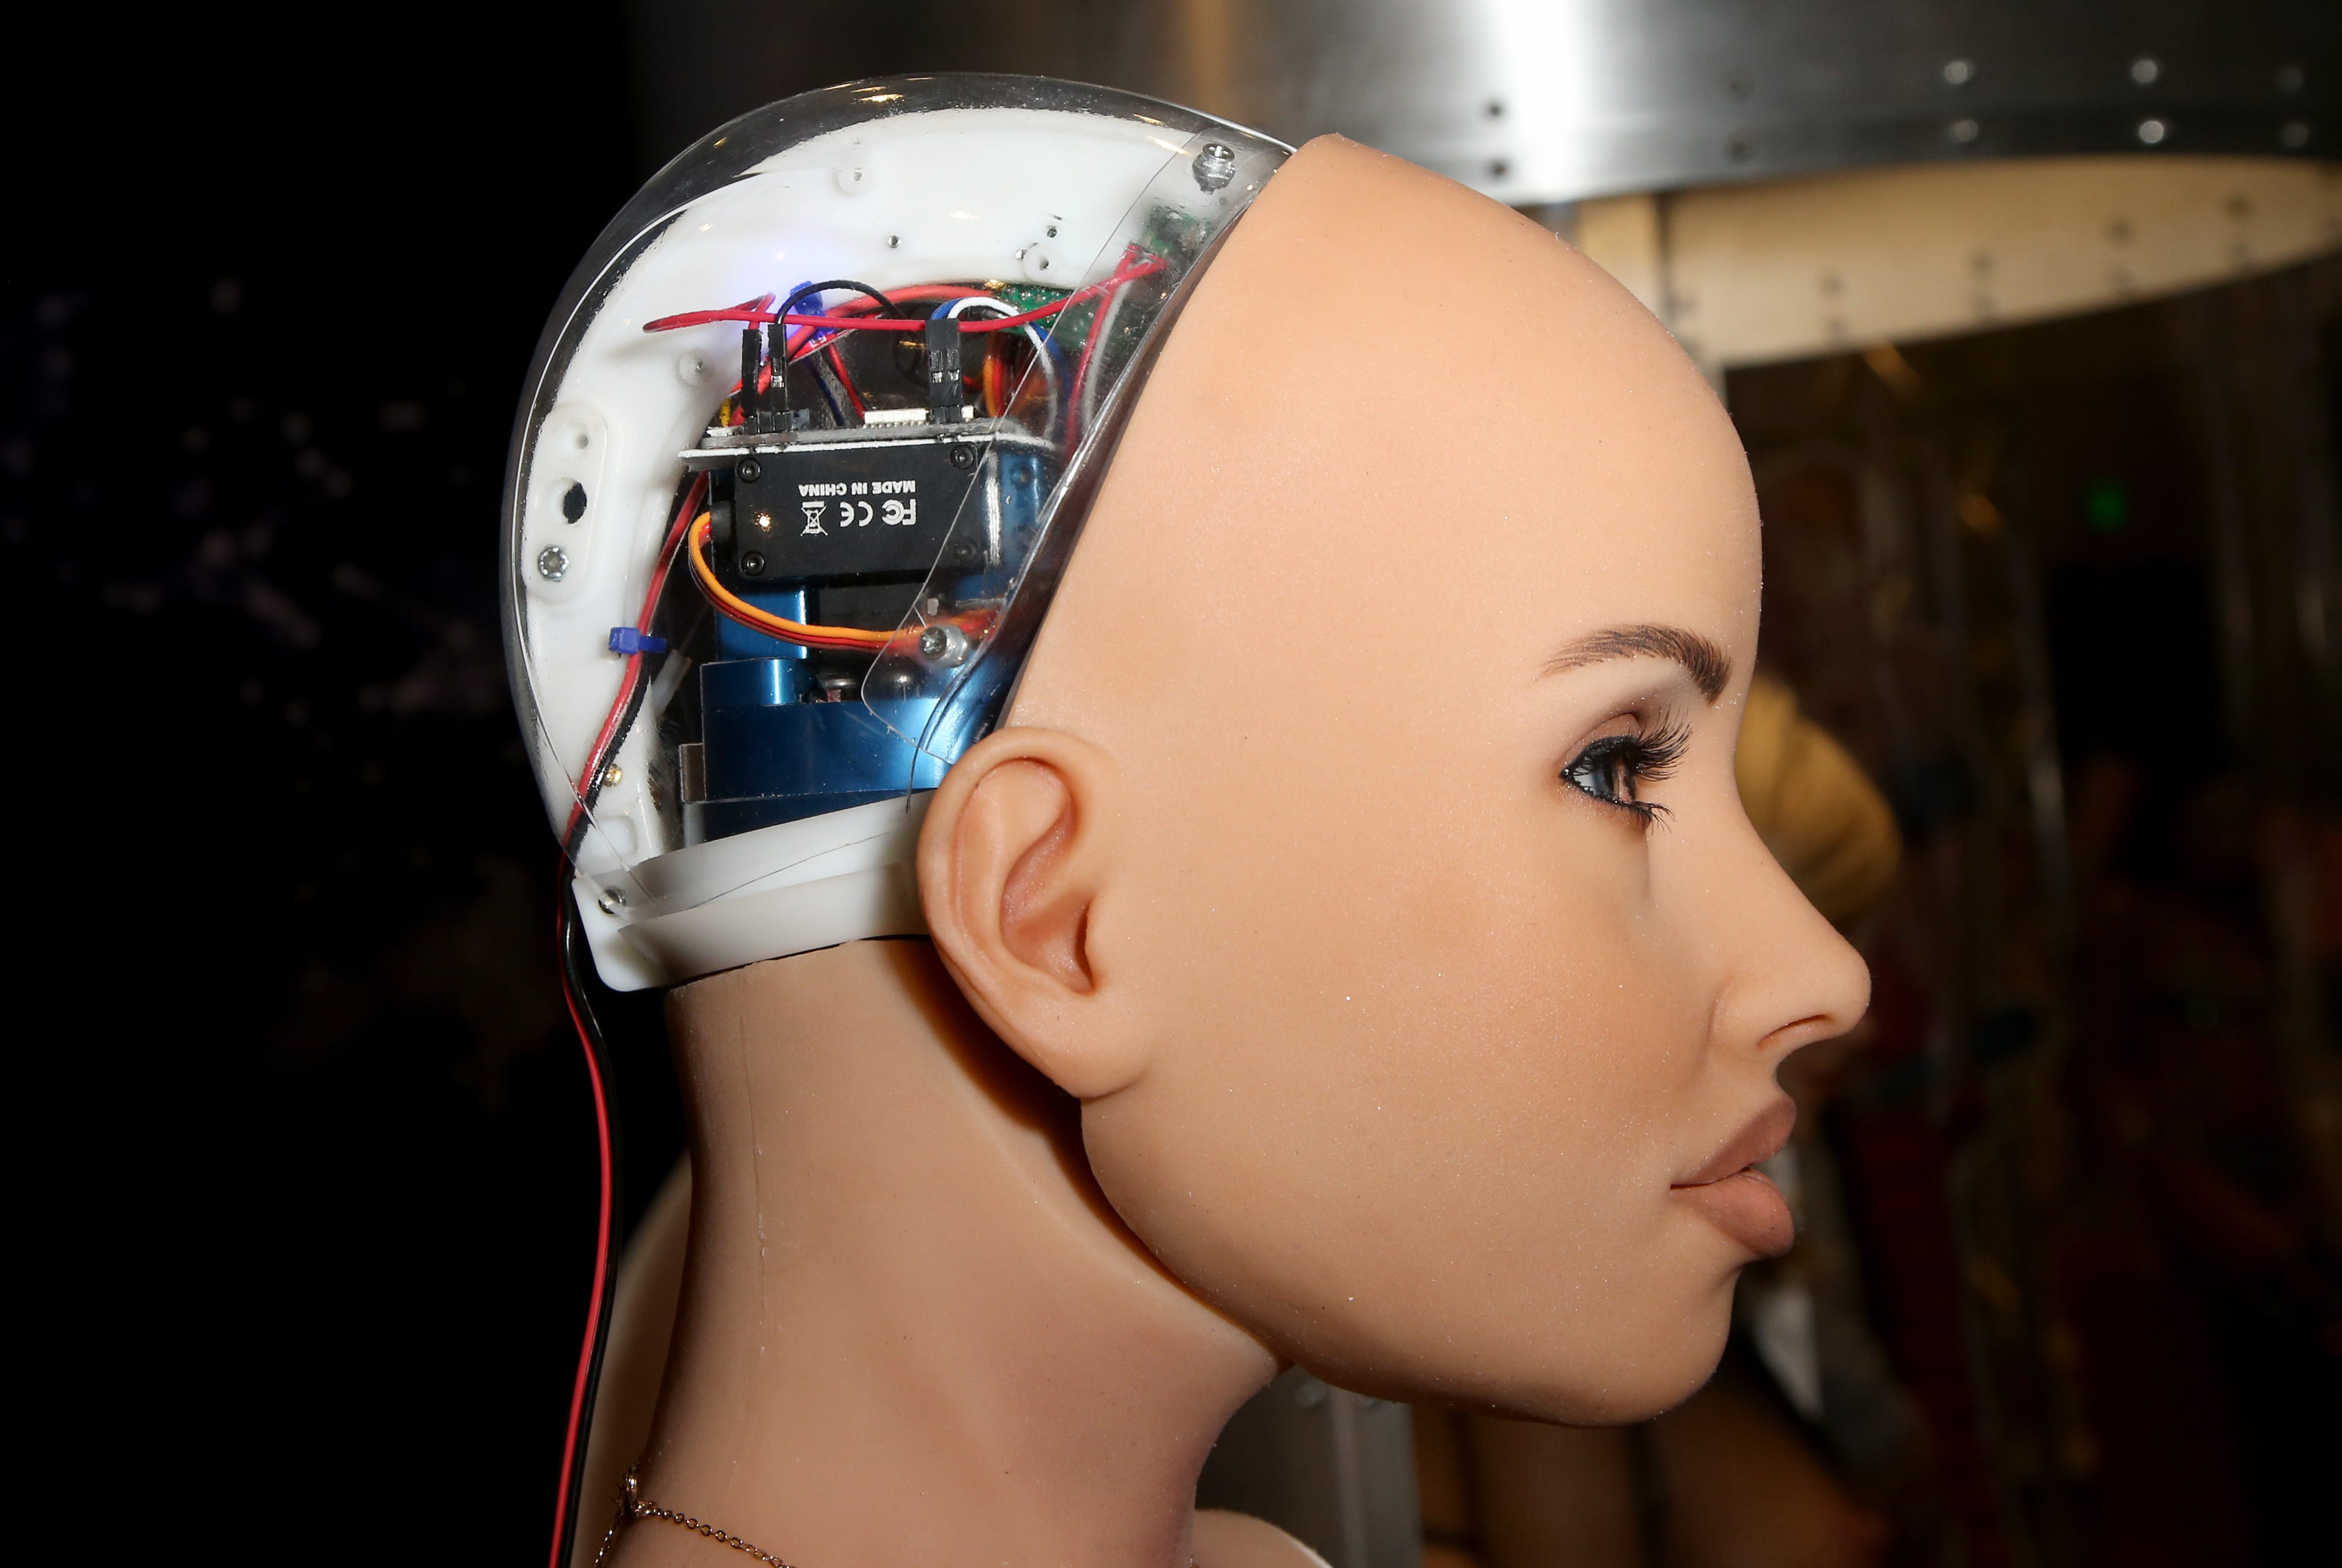 Sex Robots, Teledildonics, and the Rise of Technosexuals During Lockdown